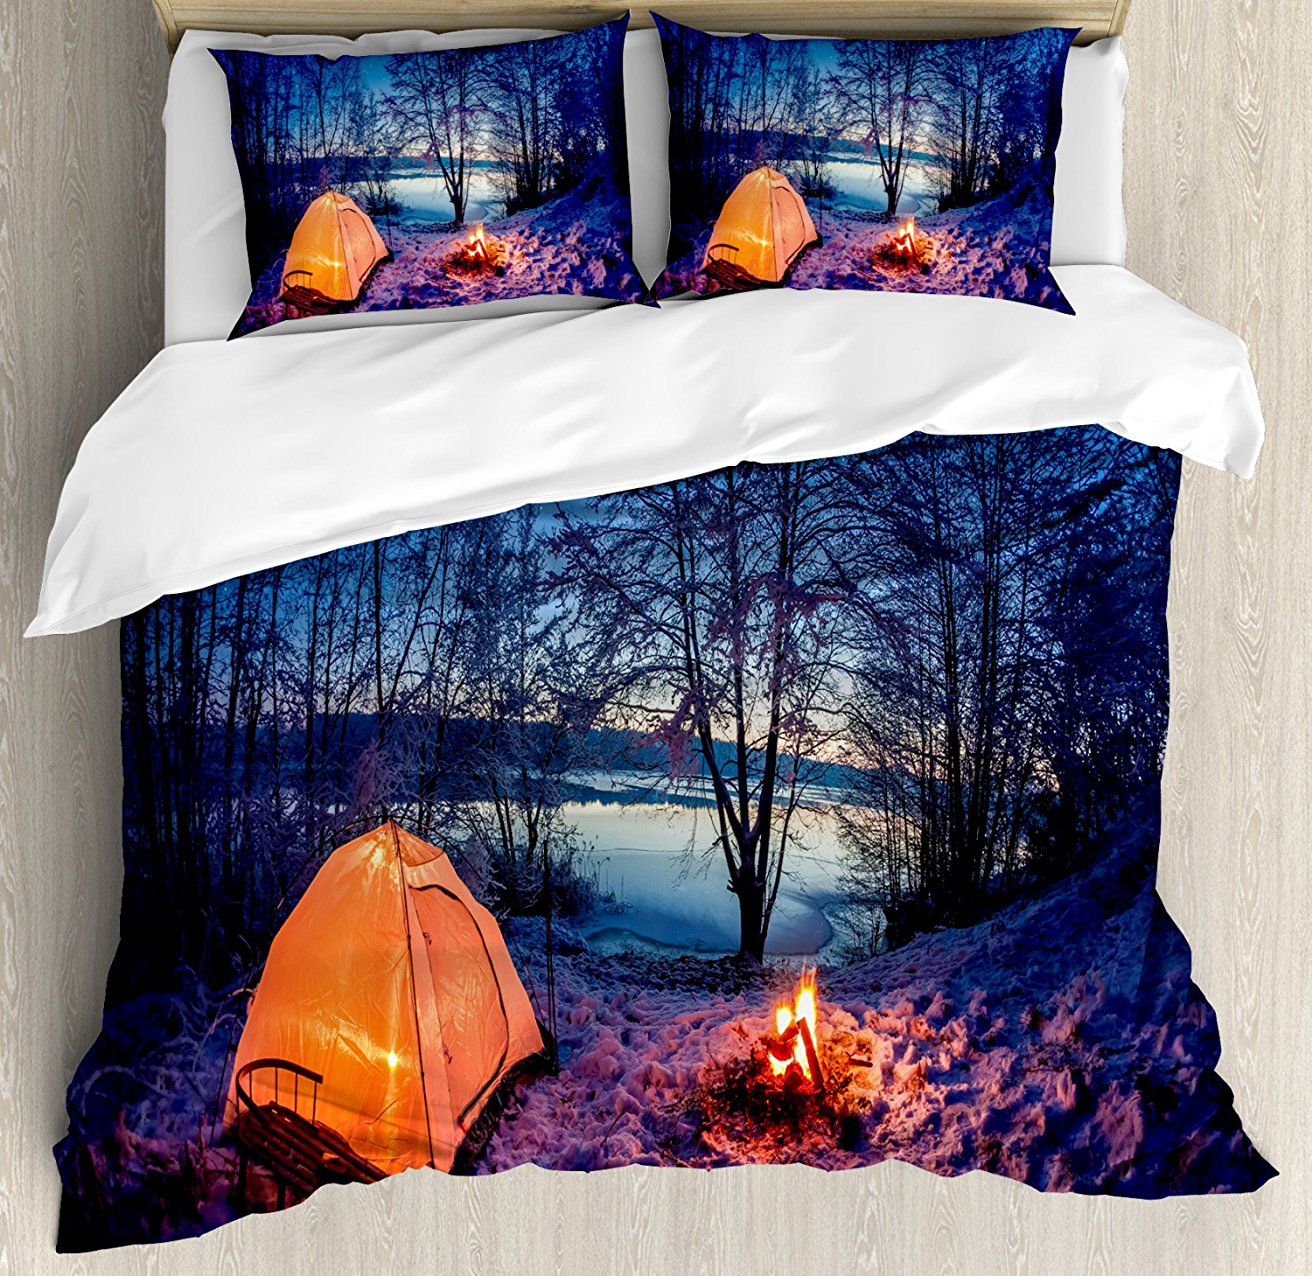 Forest Duvet Cover Set Dark Night Camping Tent Photo in the Winter on the Snow Covered Lands by the Lake 4 Piece Bedding Set